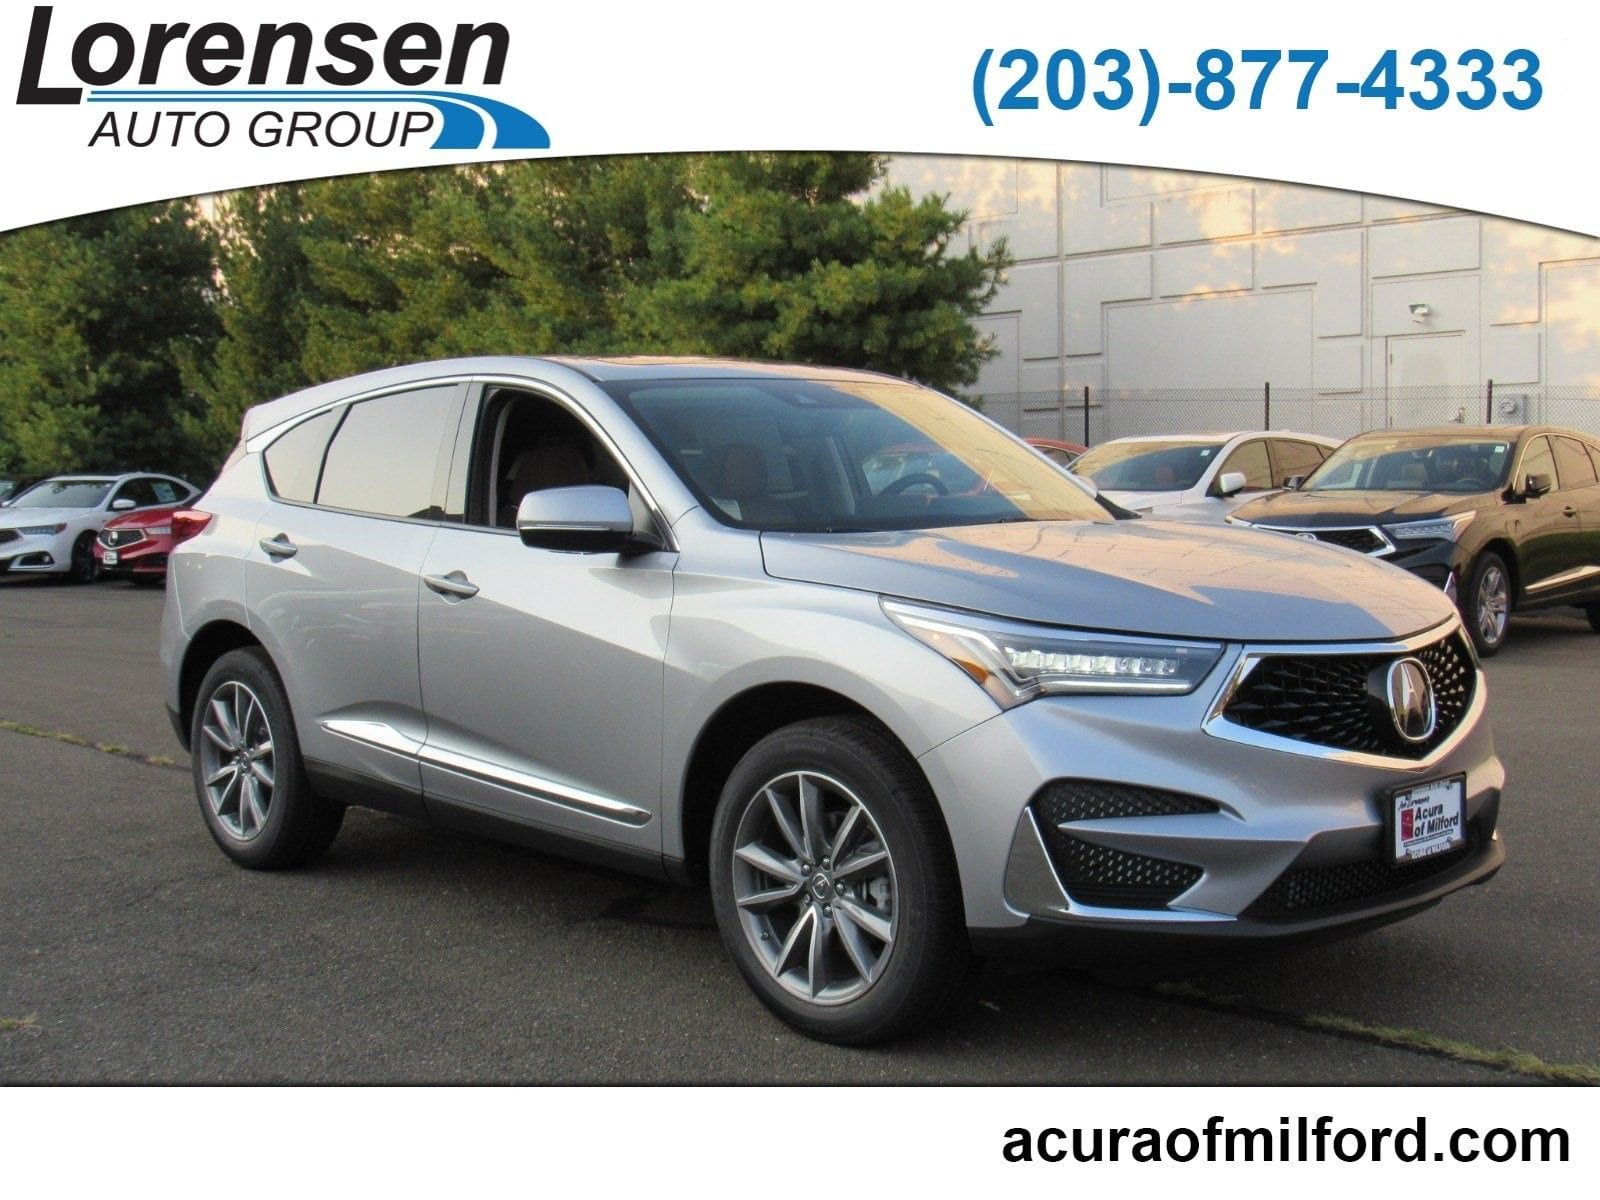 Best Of 2008 Acura Mdx View Details Https Dantuckerautos Com 2008 Acura Mdx In 2020 Acura Mdx Acura Subaru Wrx For Sale